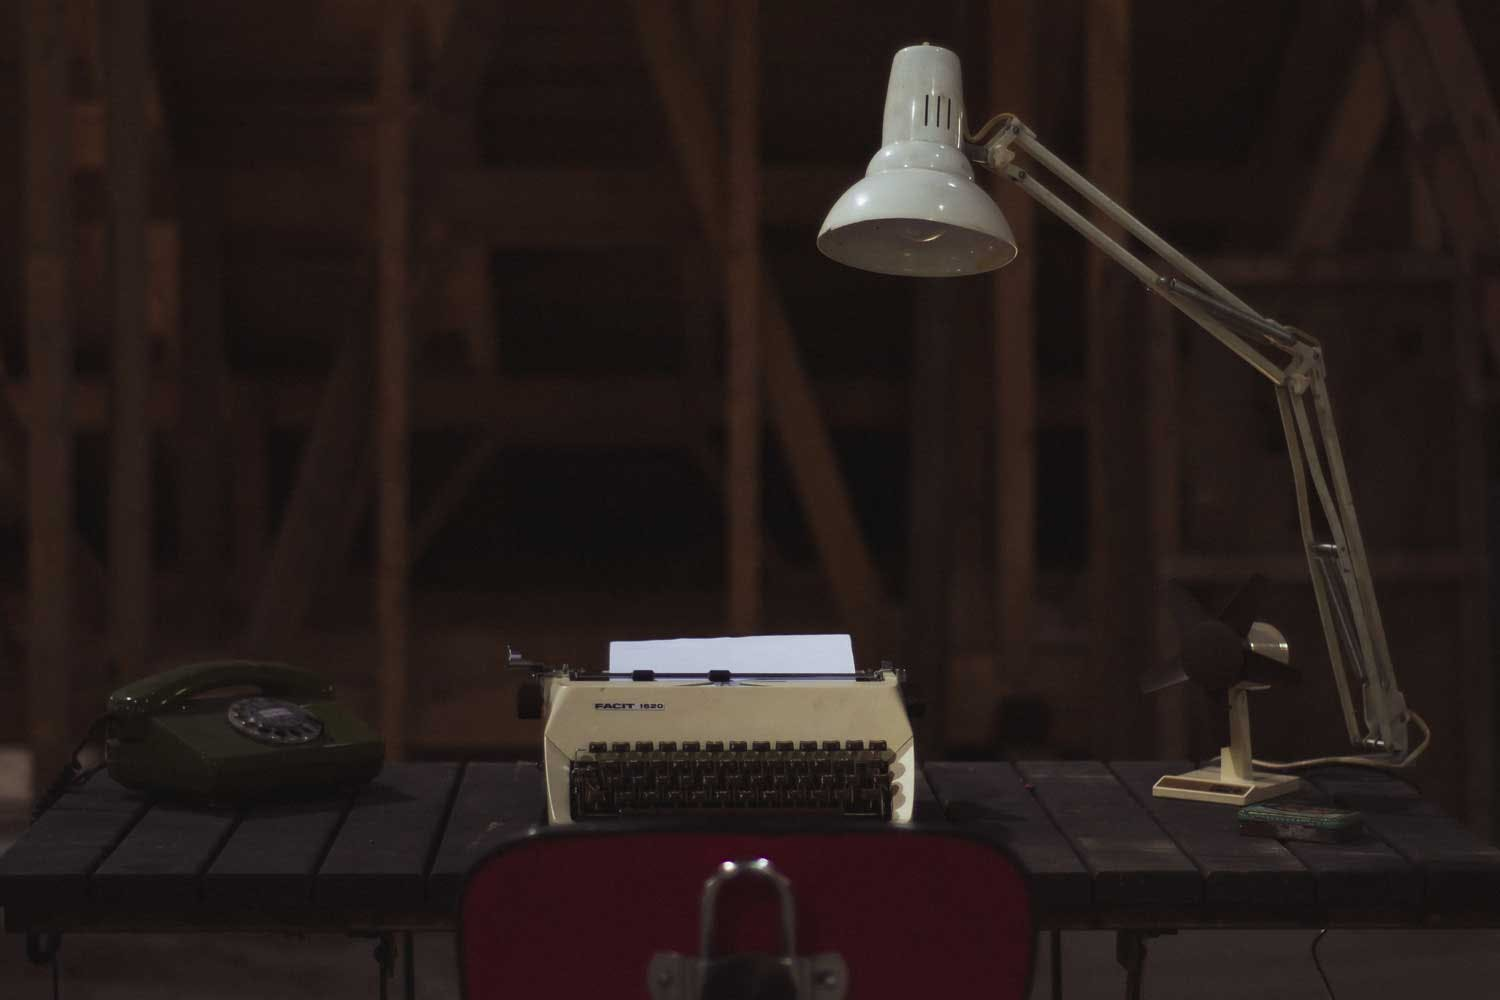 A desk appointed with a typewriter and lamp